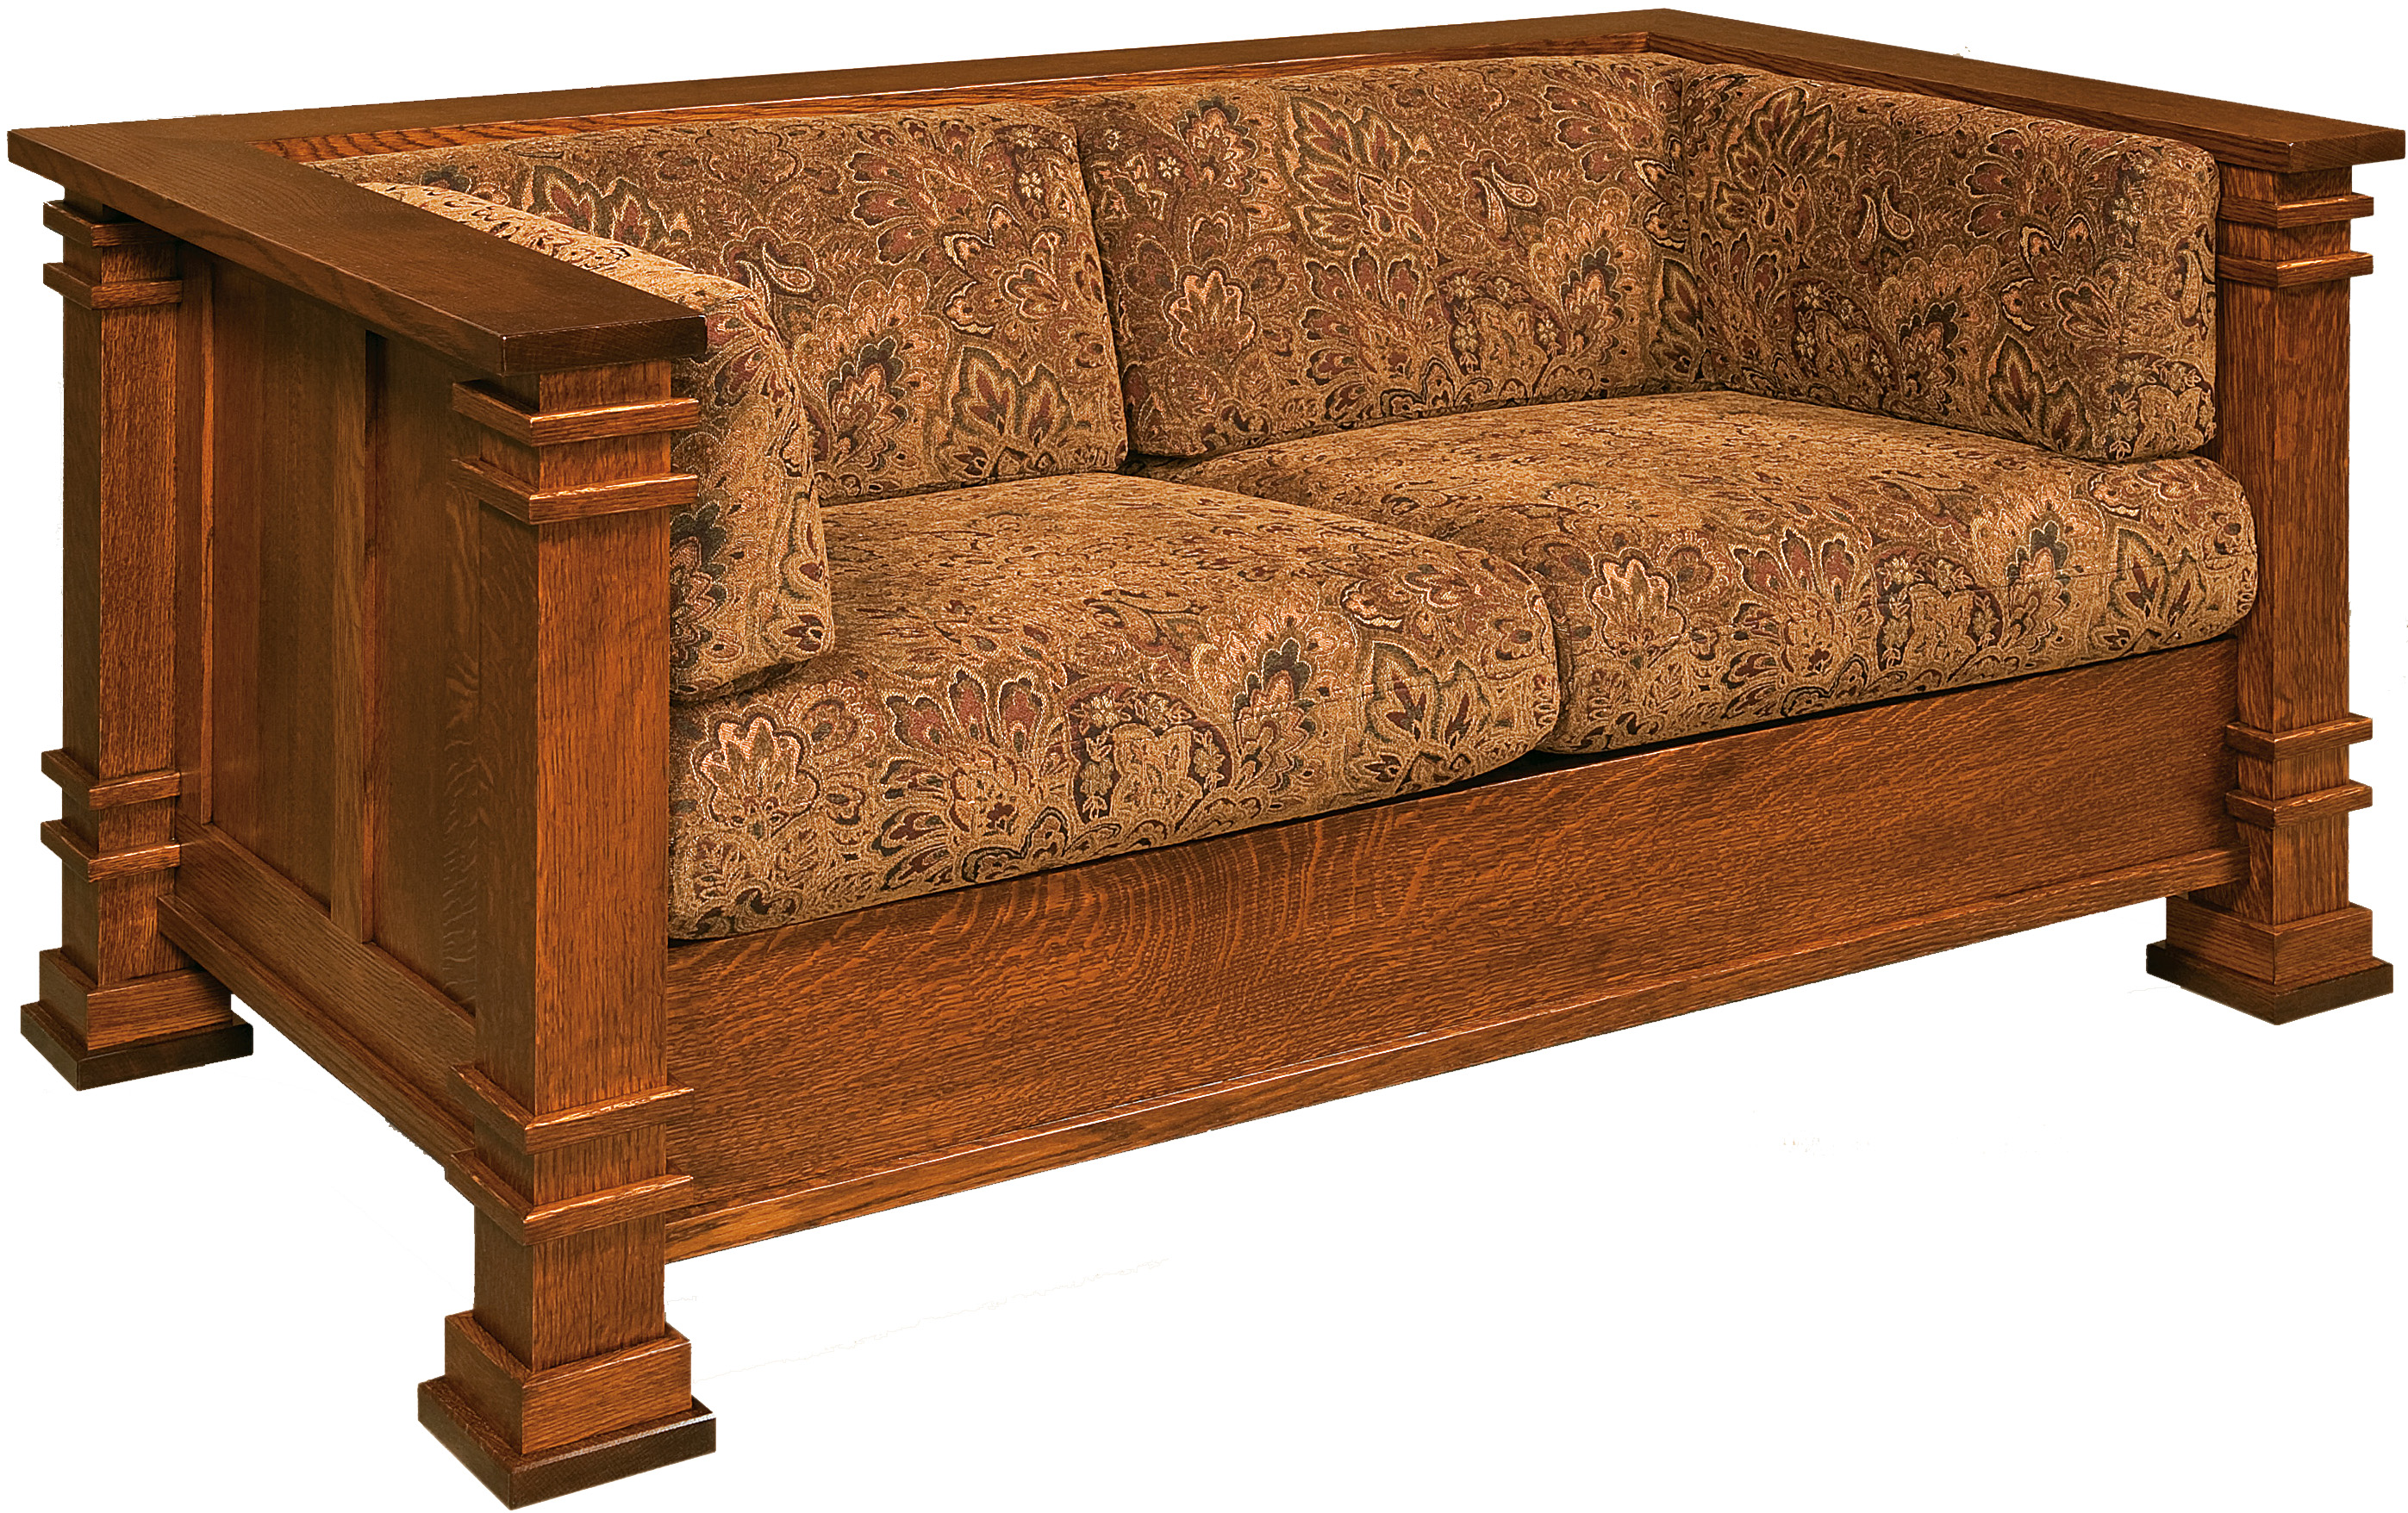 Weaver Furniture Sales Hosts Food Drive And Spring Sale On Amish Furniture